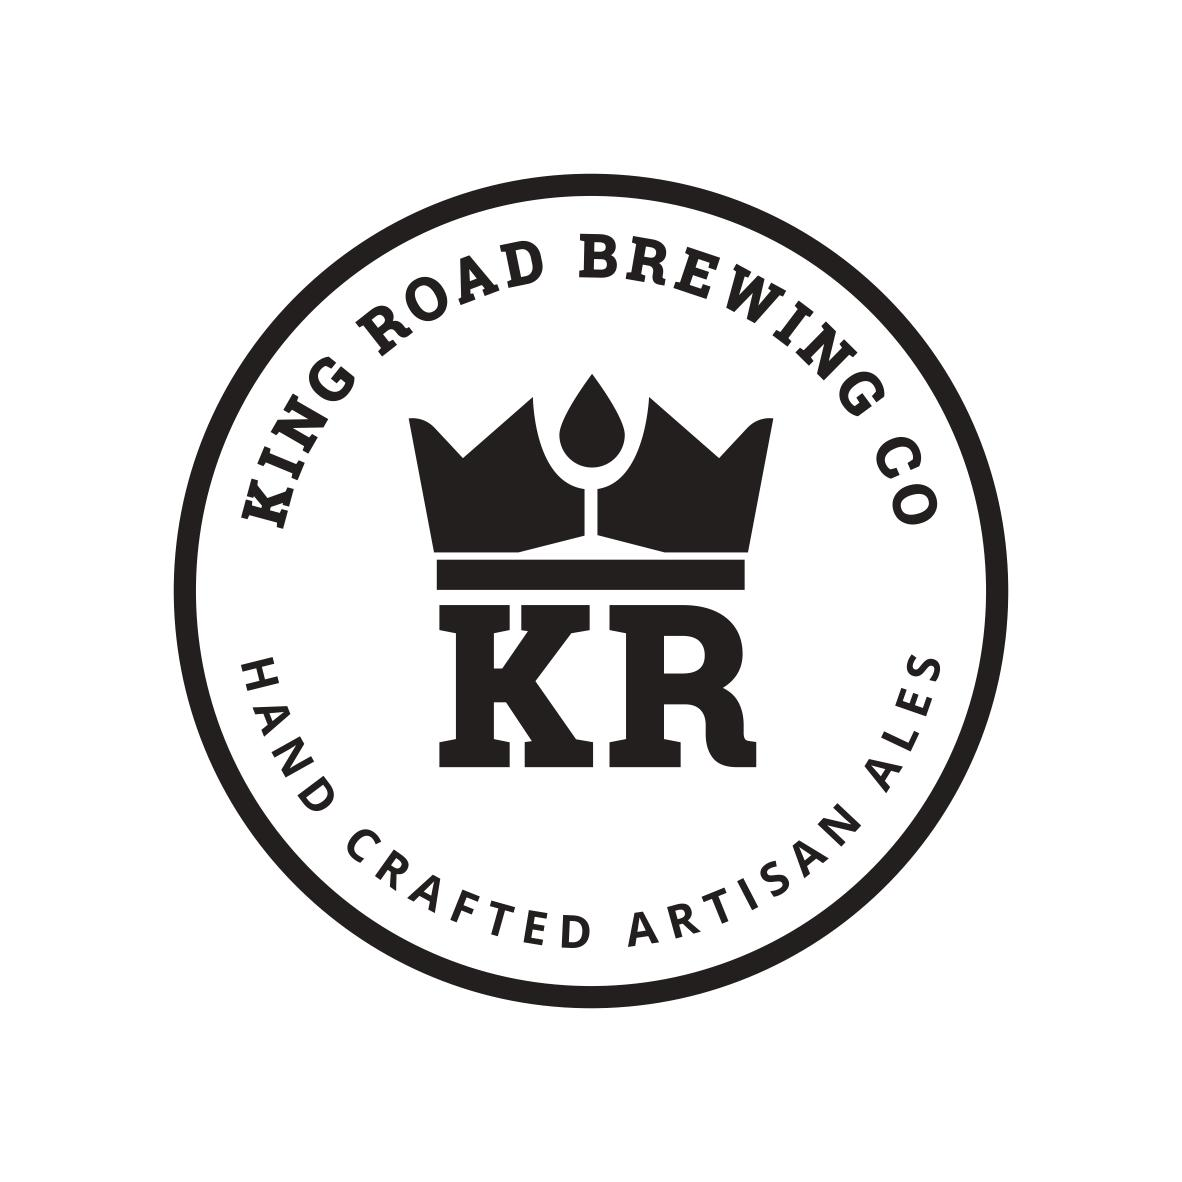 King Road Brewery